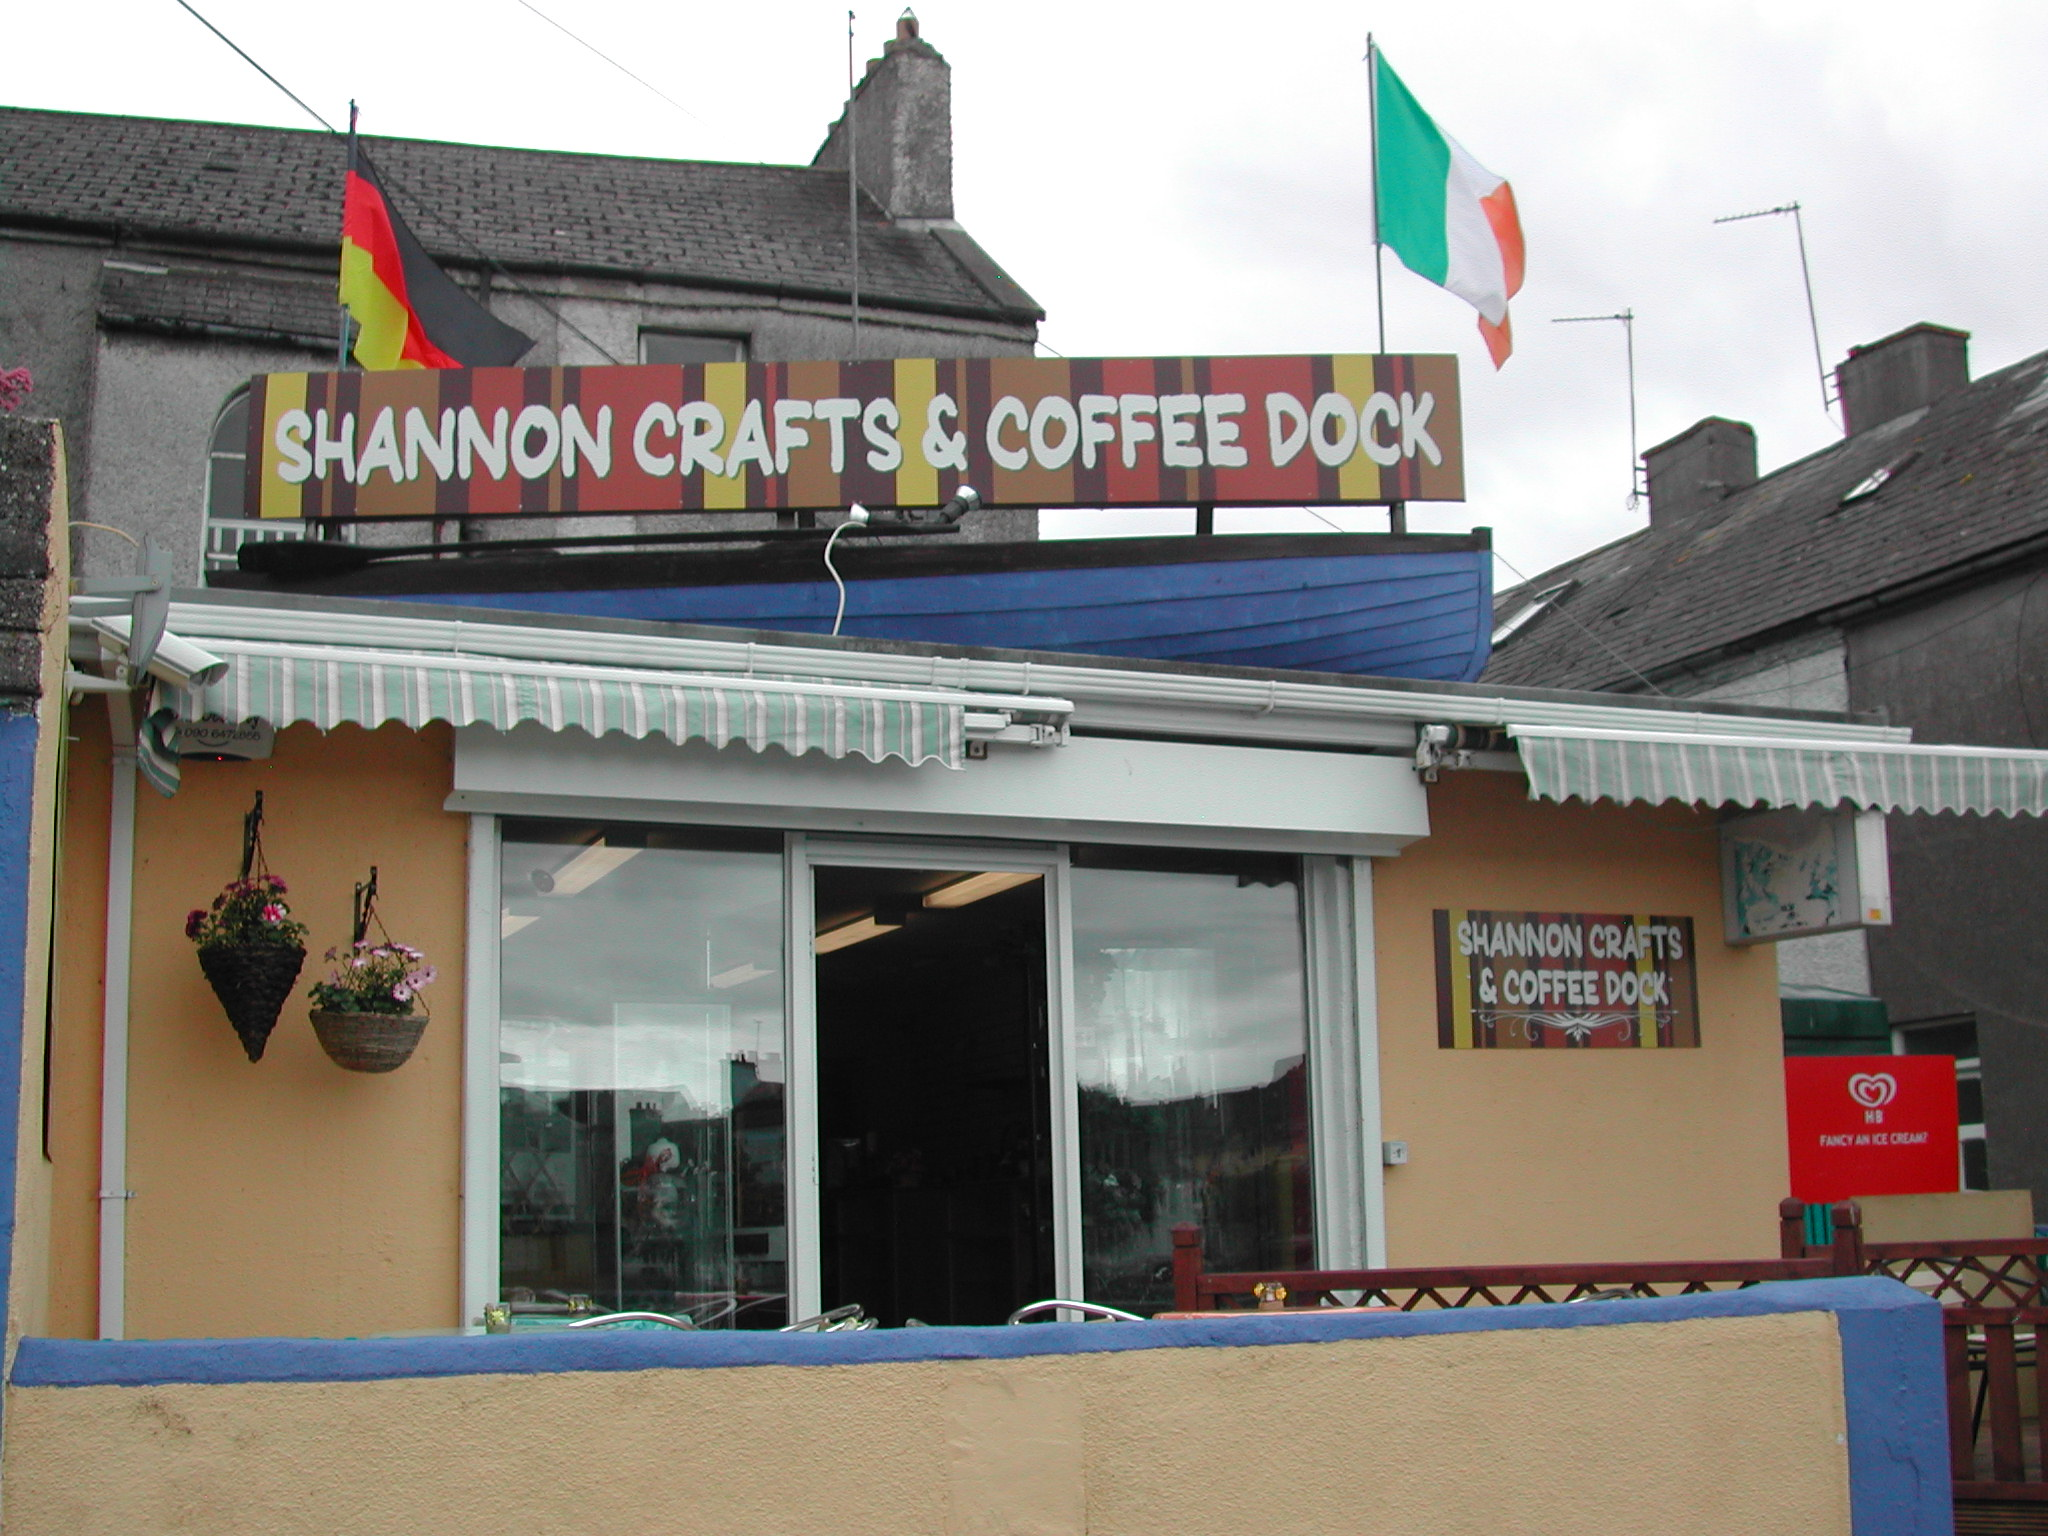 Shannon Crafts and Coffee Dock - Discover the Shannon